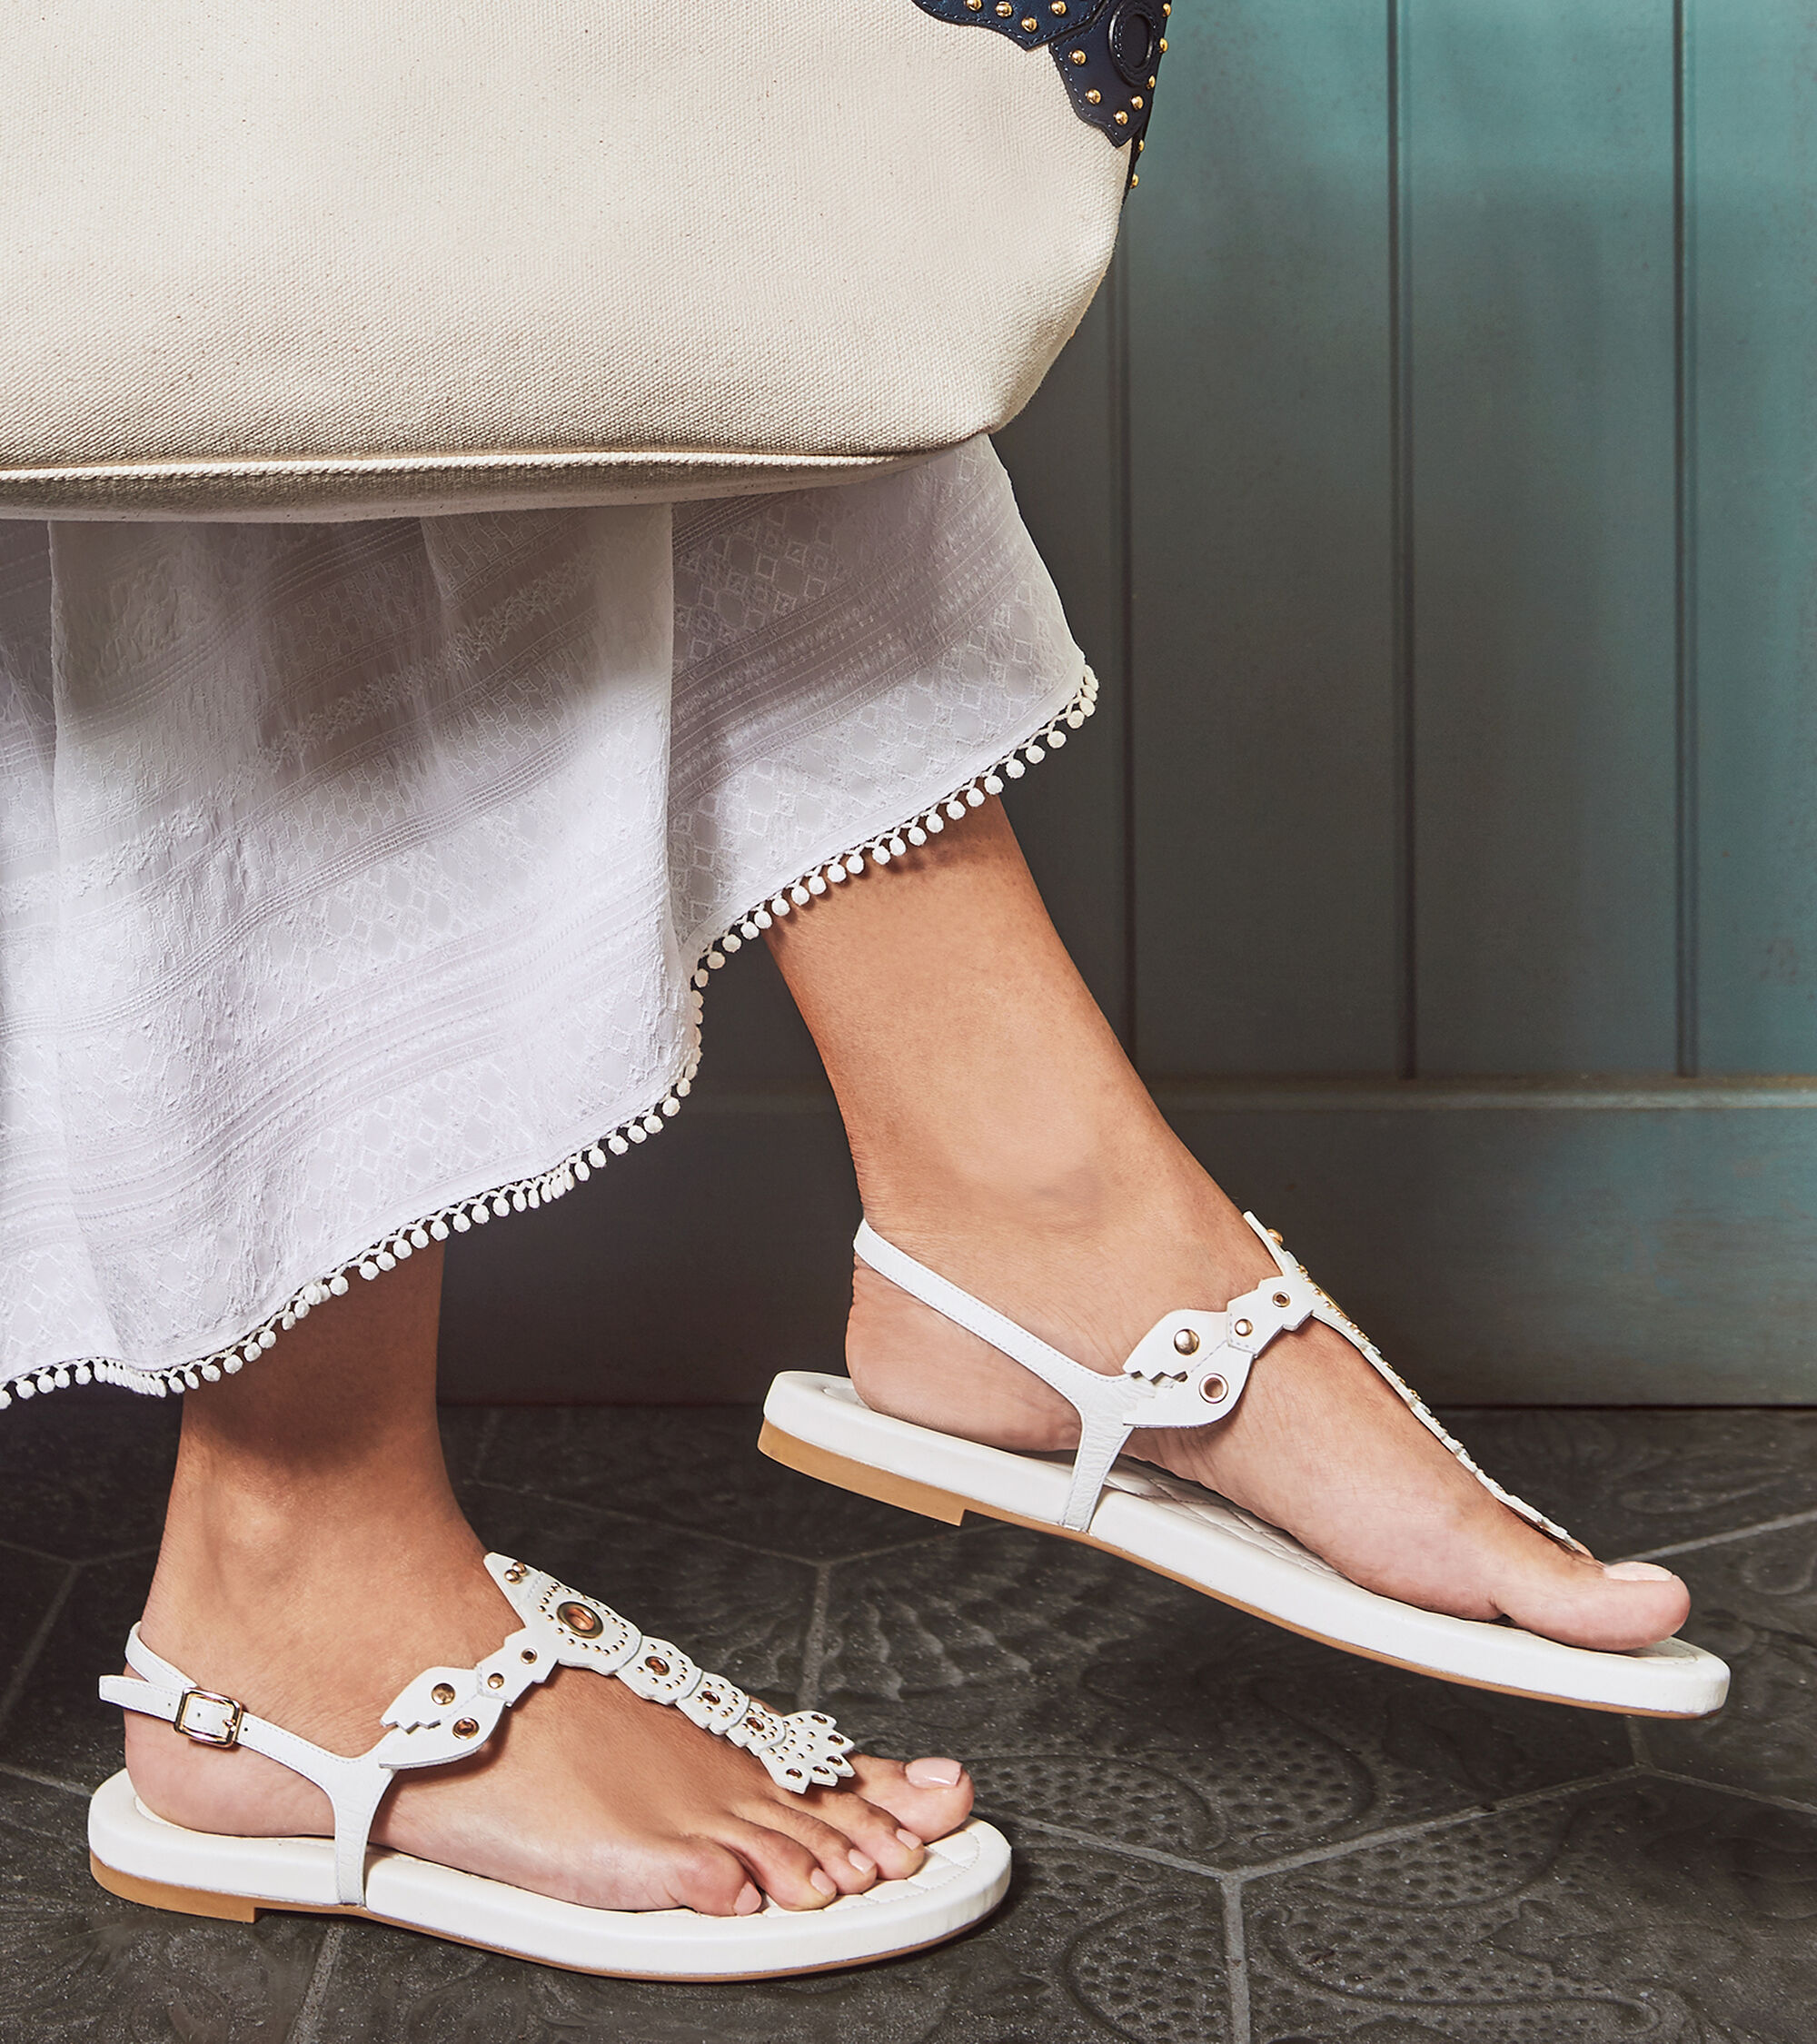 c4aa6ace040 Women s Pinch Lobster Sandals in White Leather